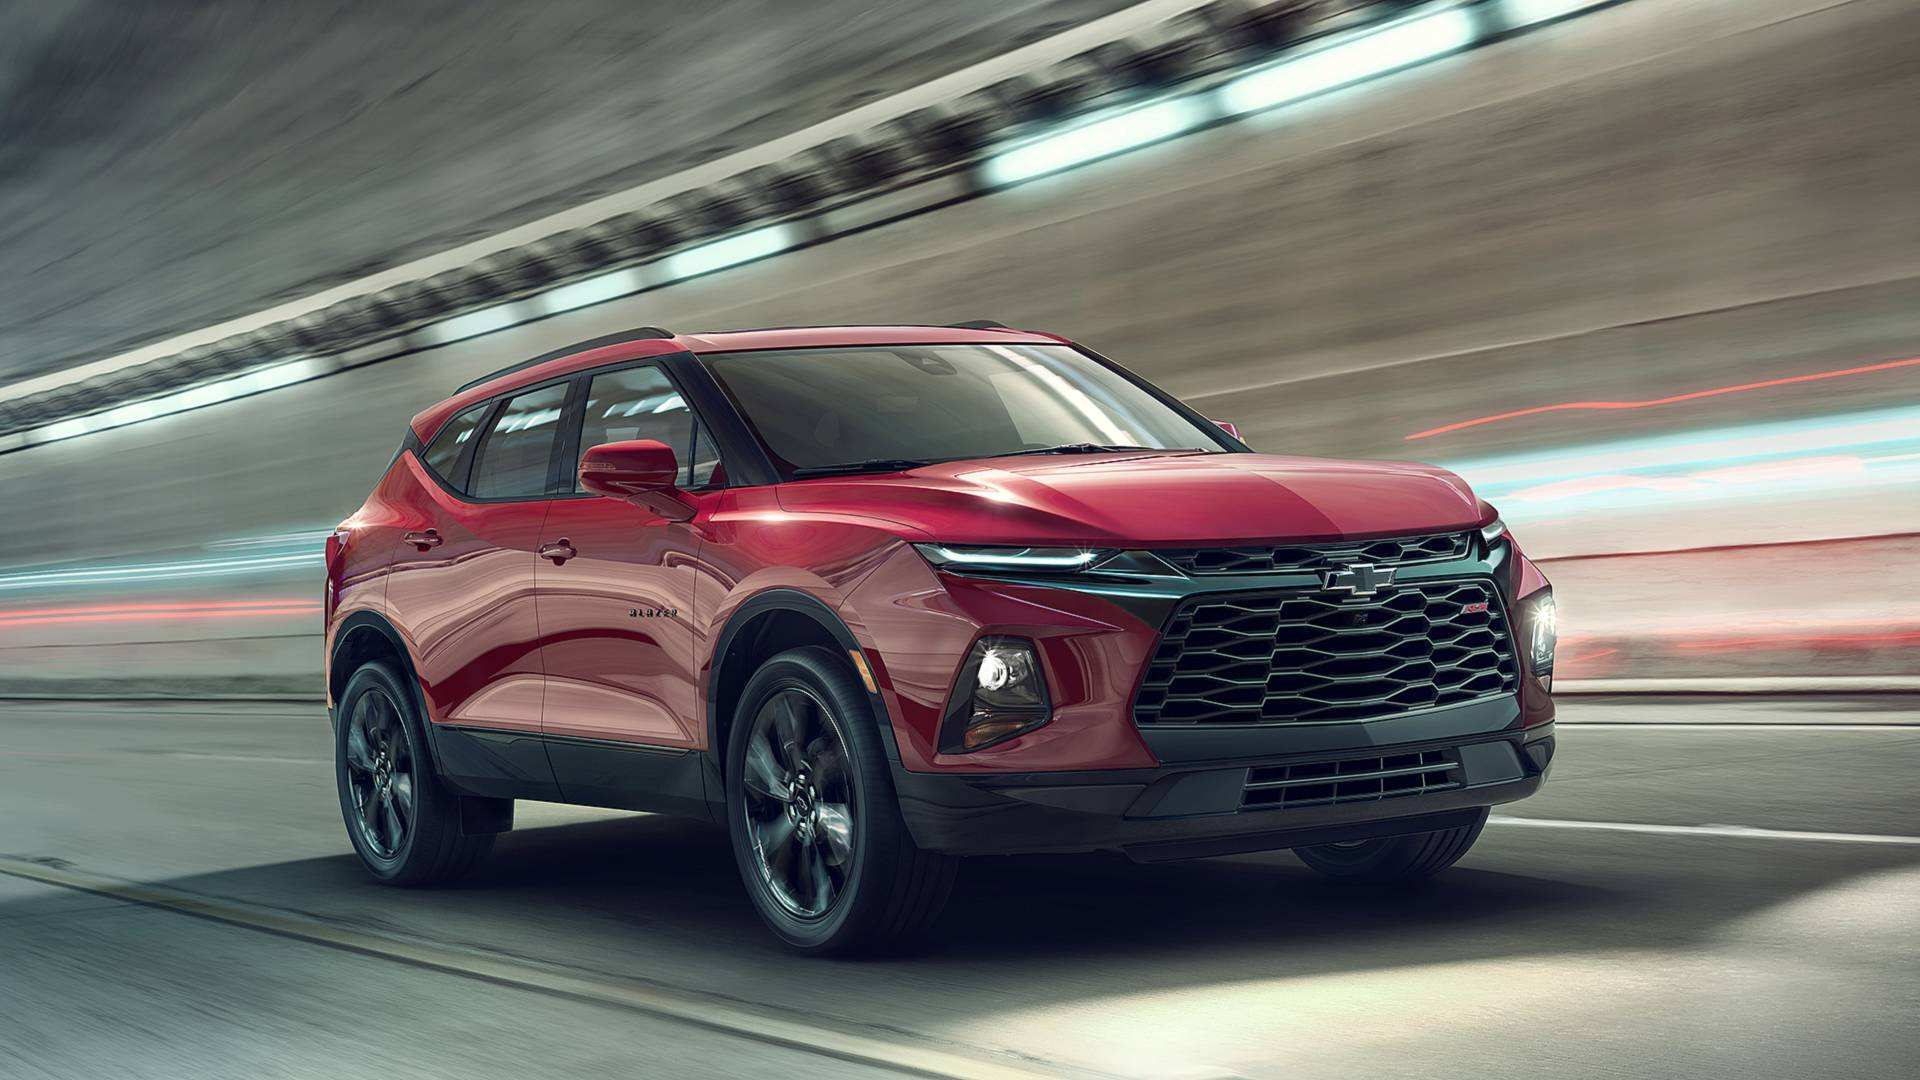 79 Concept of 2019 Chevy Trailblazer Ss Picture by 2019 Chevy Trailblazer Ss